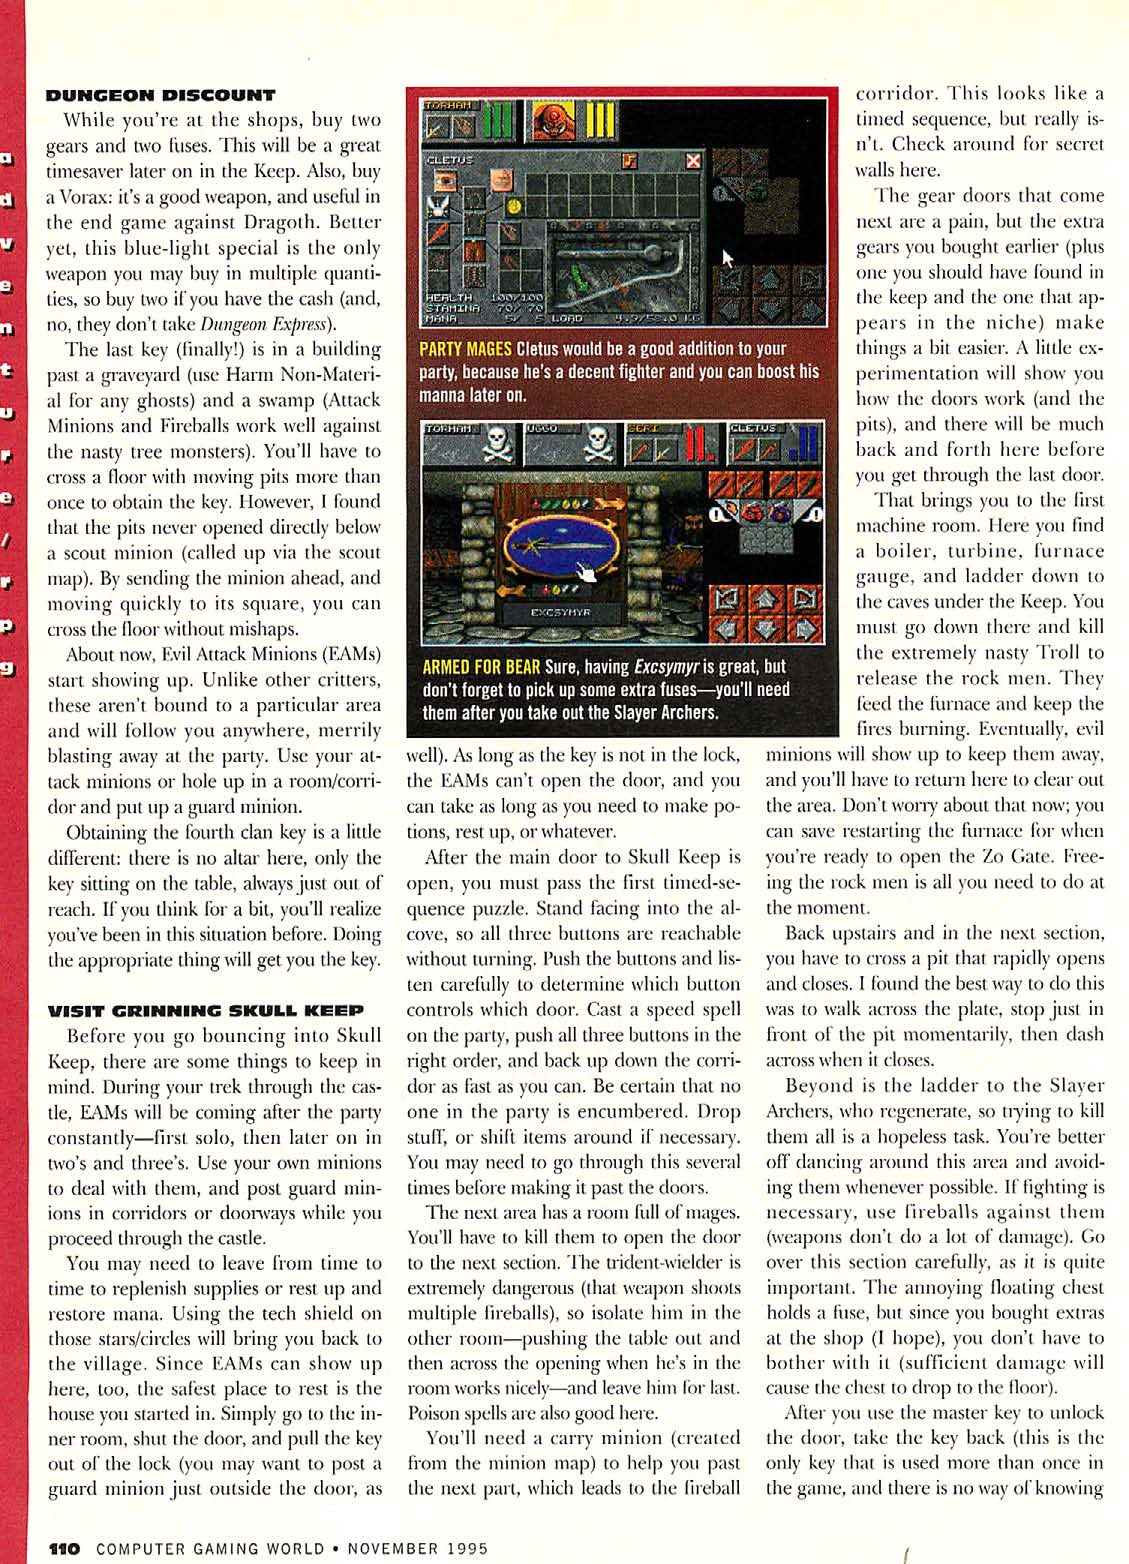 Dungeon Master II Guide published in American magazine &amp;#039;Computer Gaming World&amp;#039;, Issue #136 November 1995, Page 110